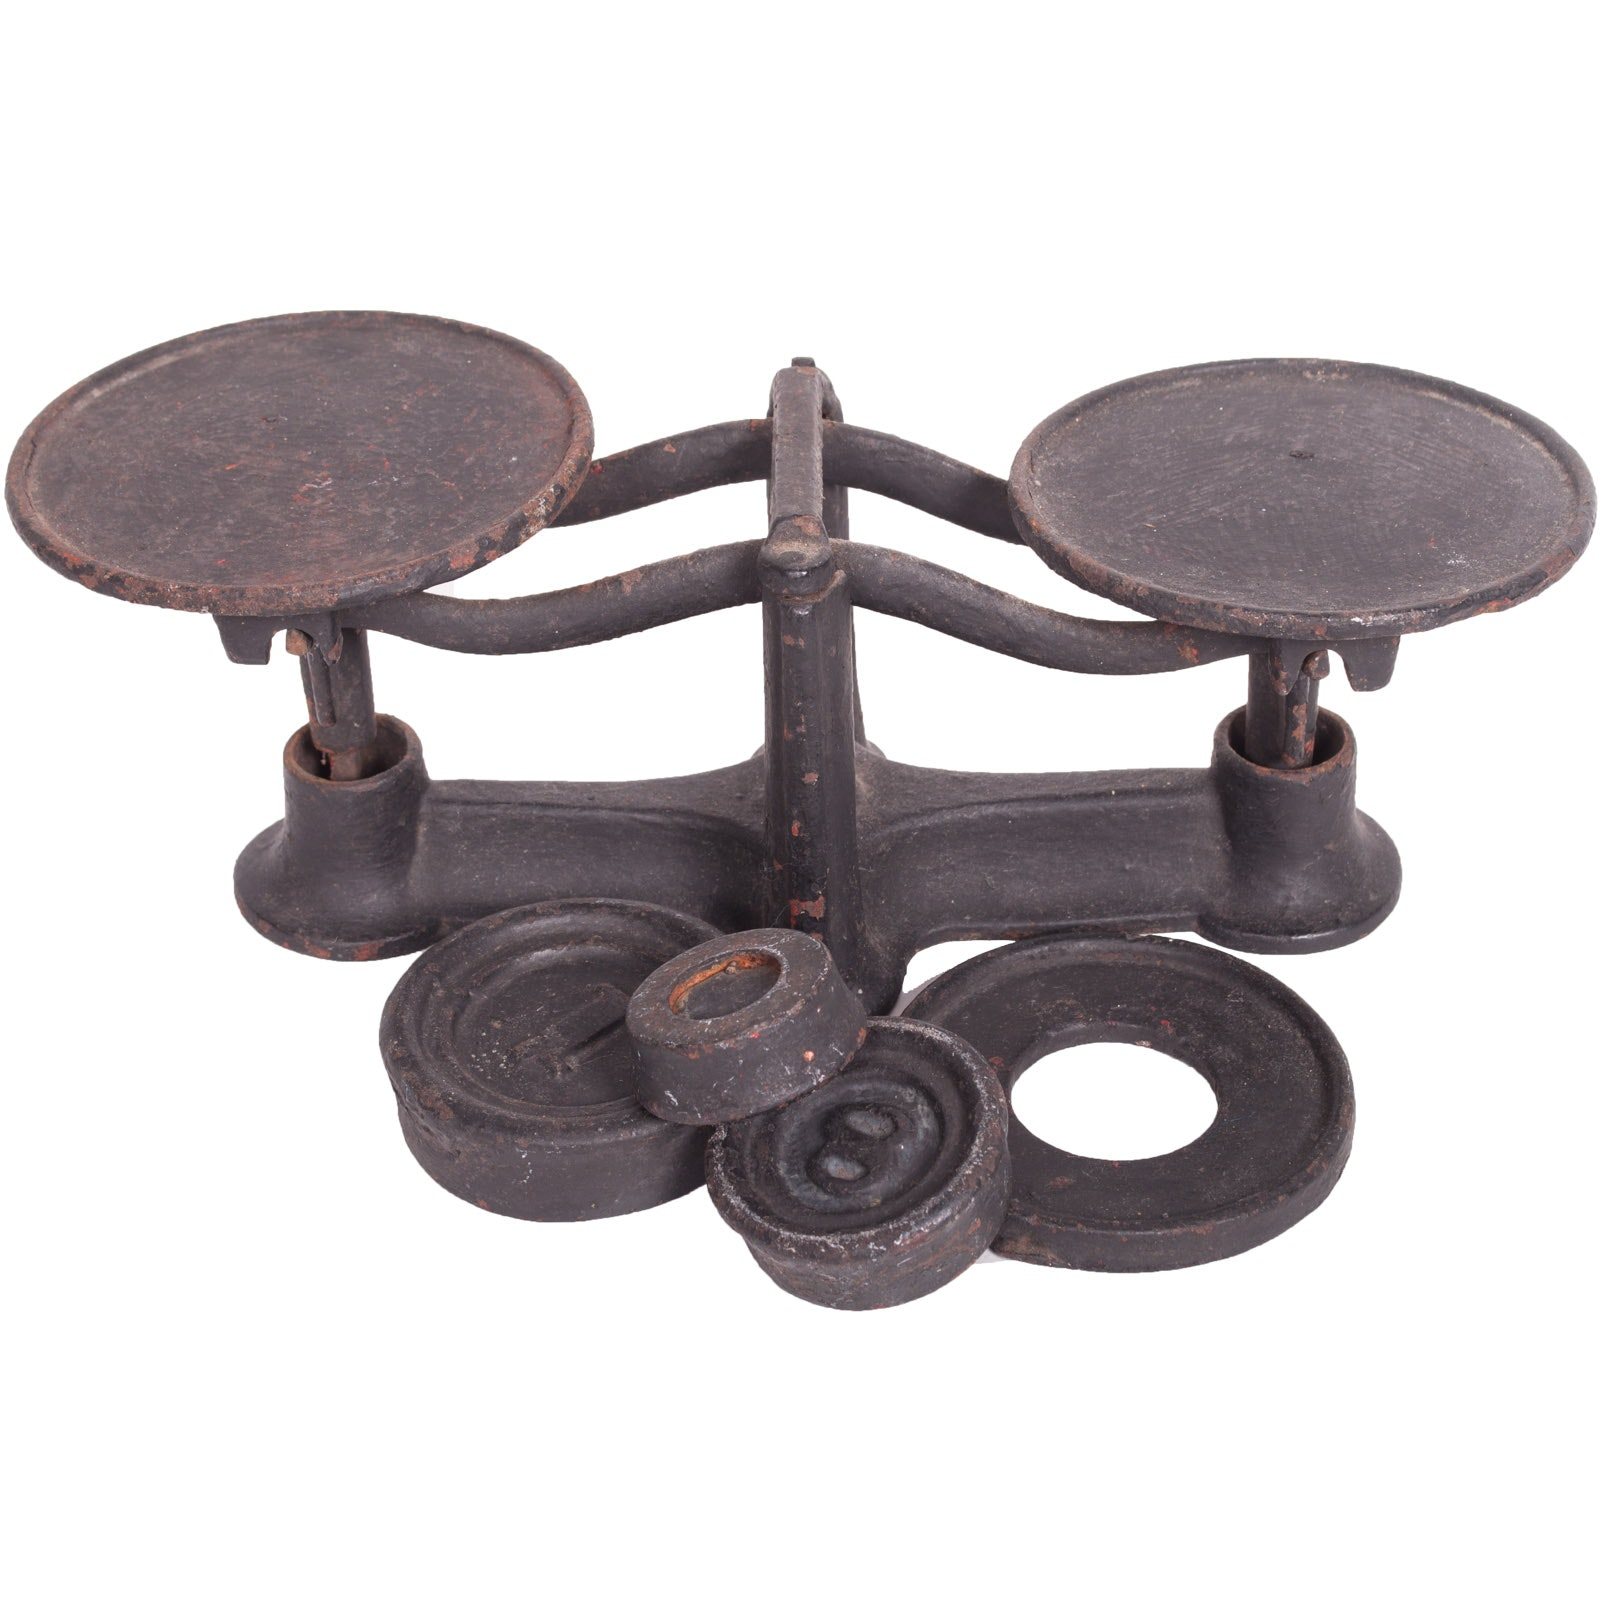 Vintage Cast Iron Scale with Weights